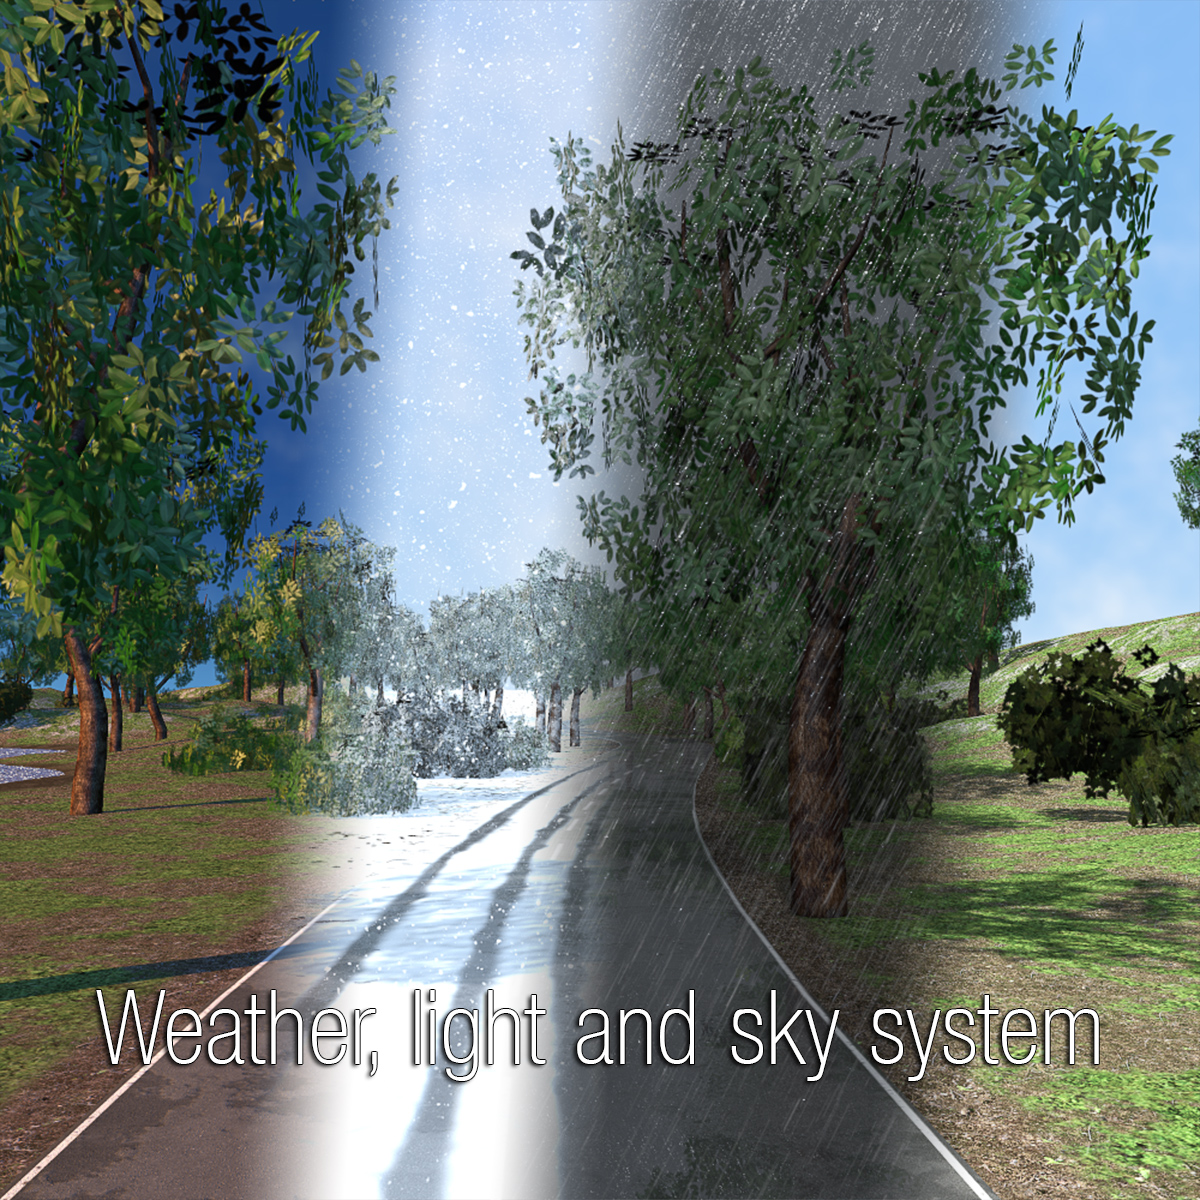 Weather, light and sky system